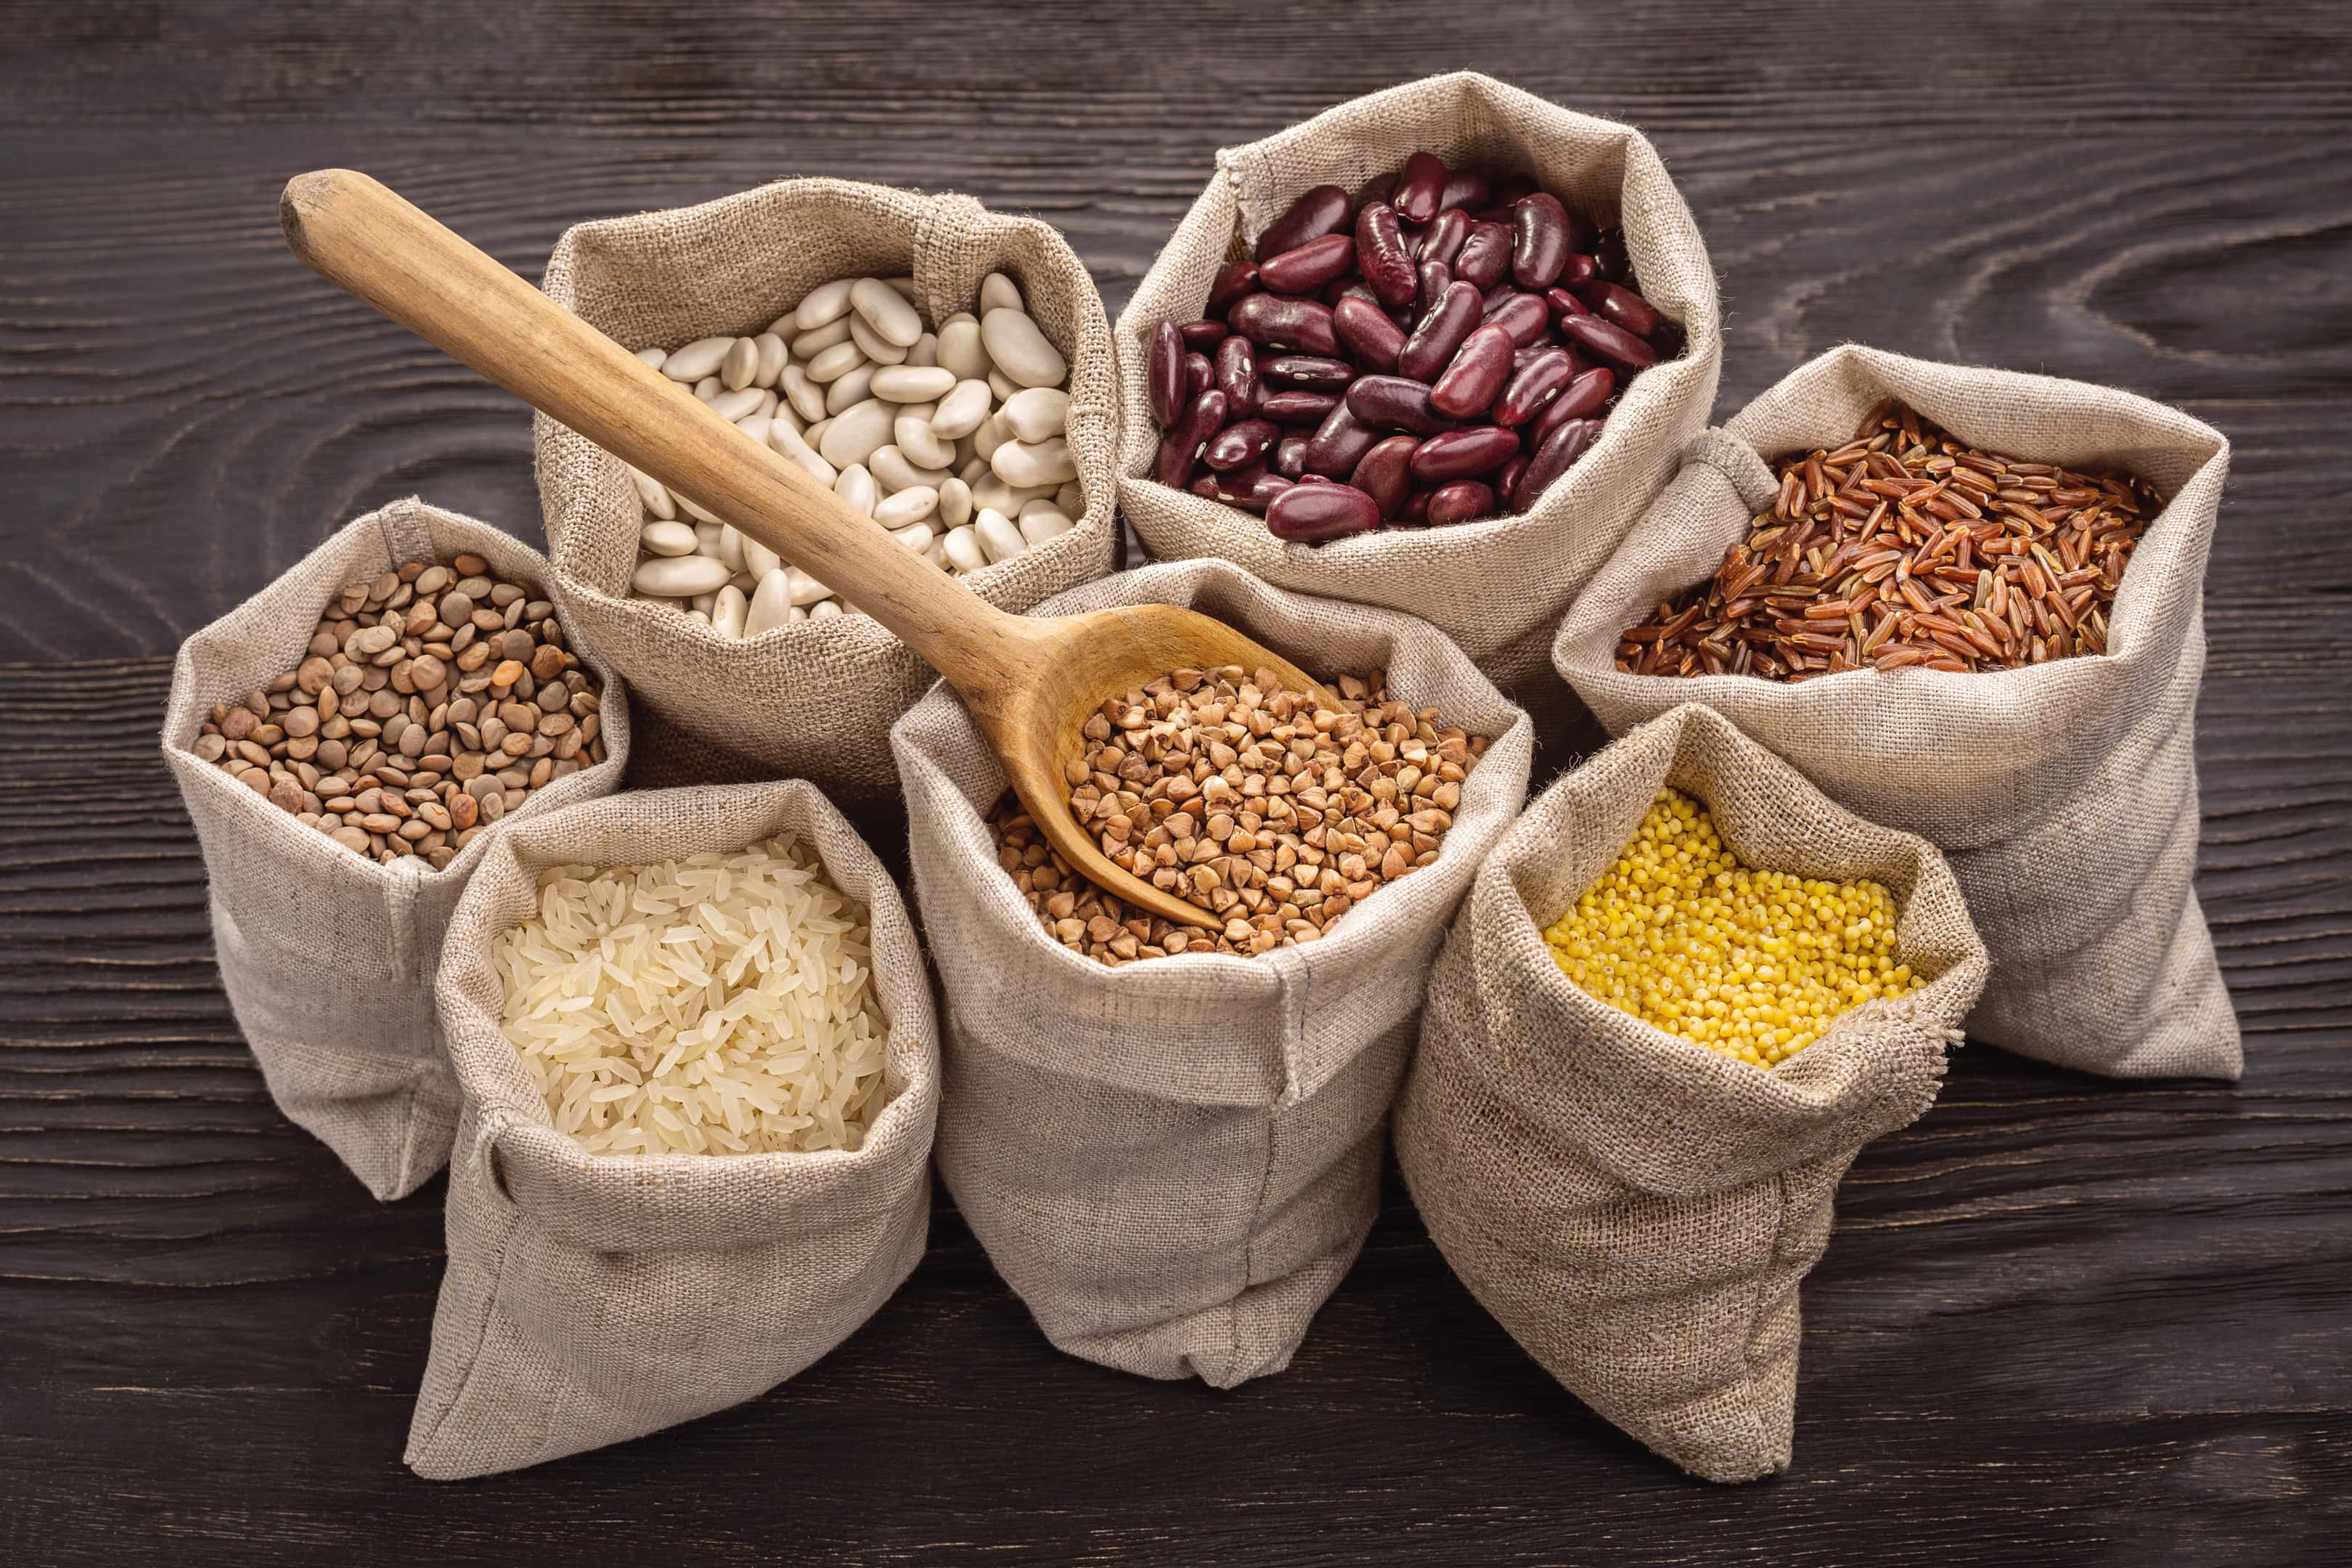 Beans and legumes in bags on wooden background